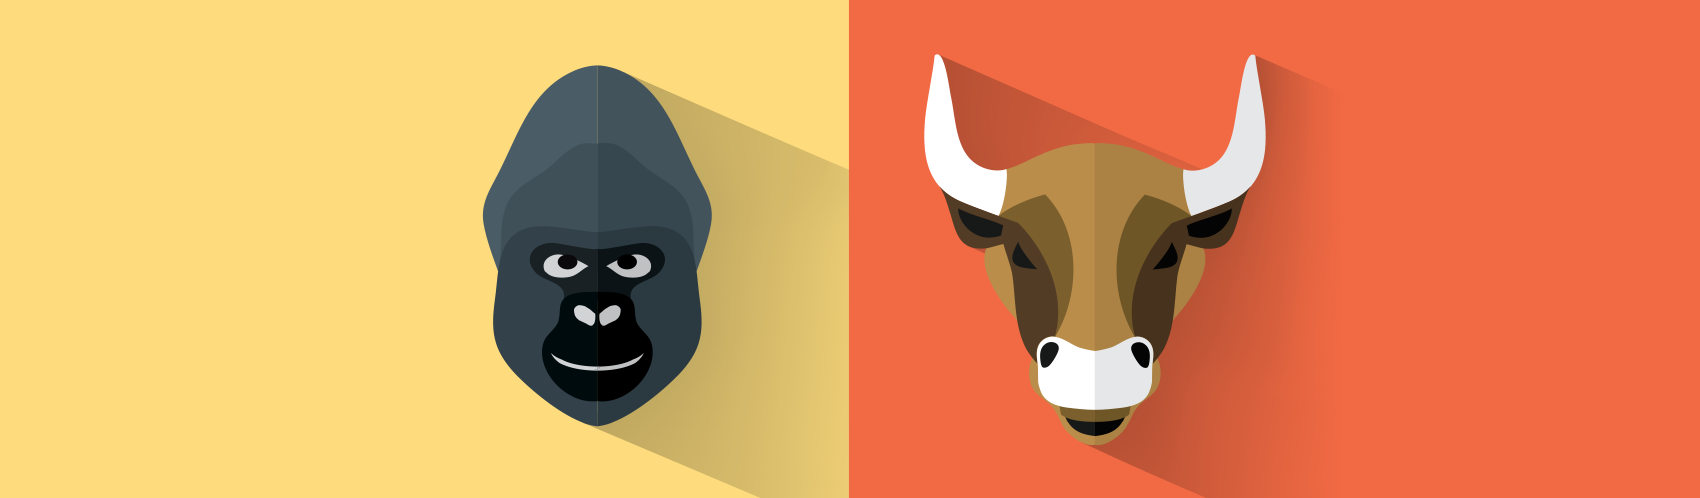 gorillas_and_bulls